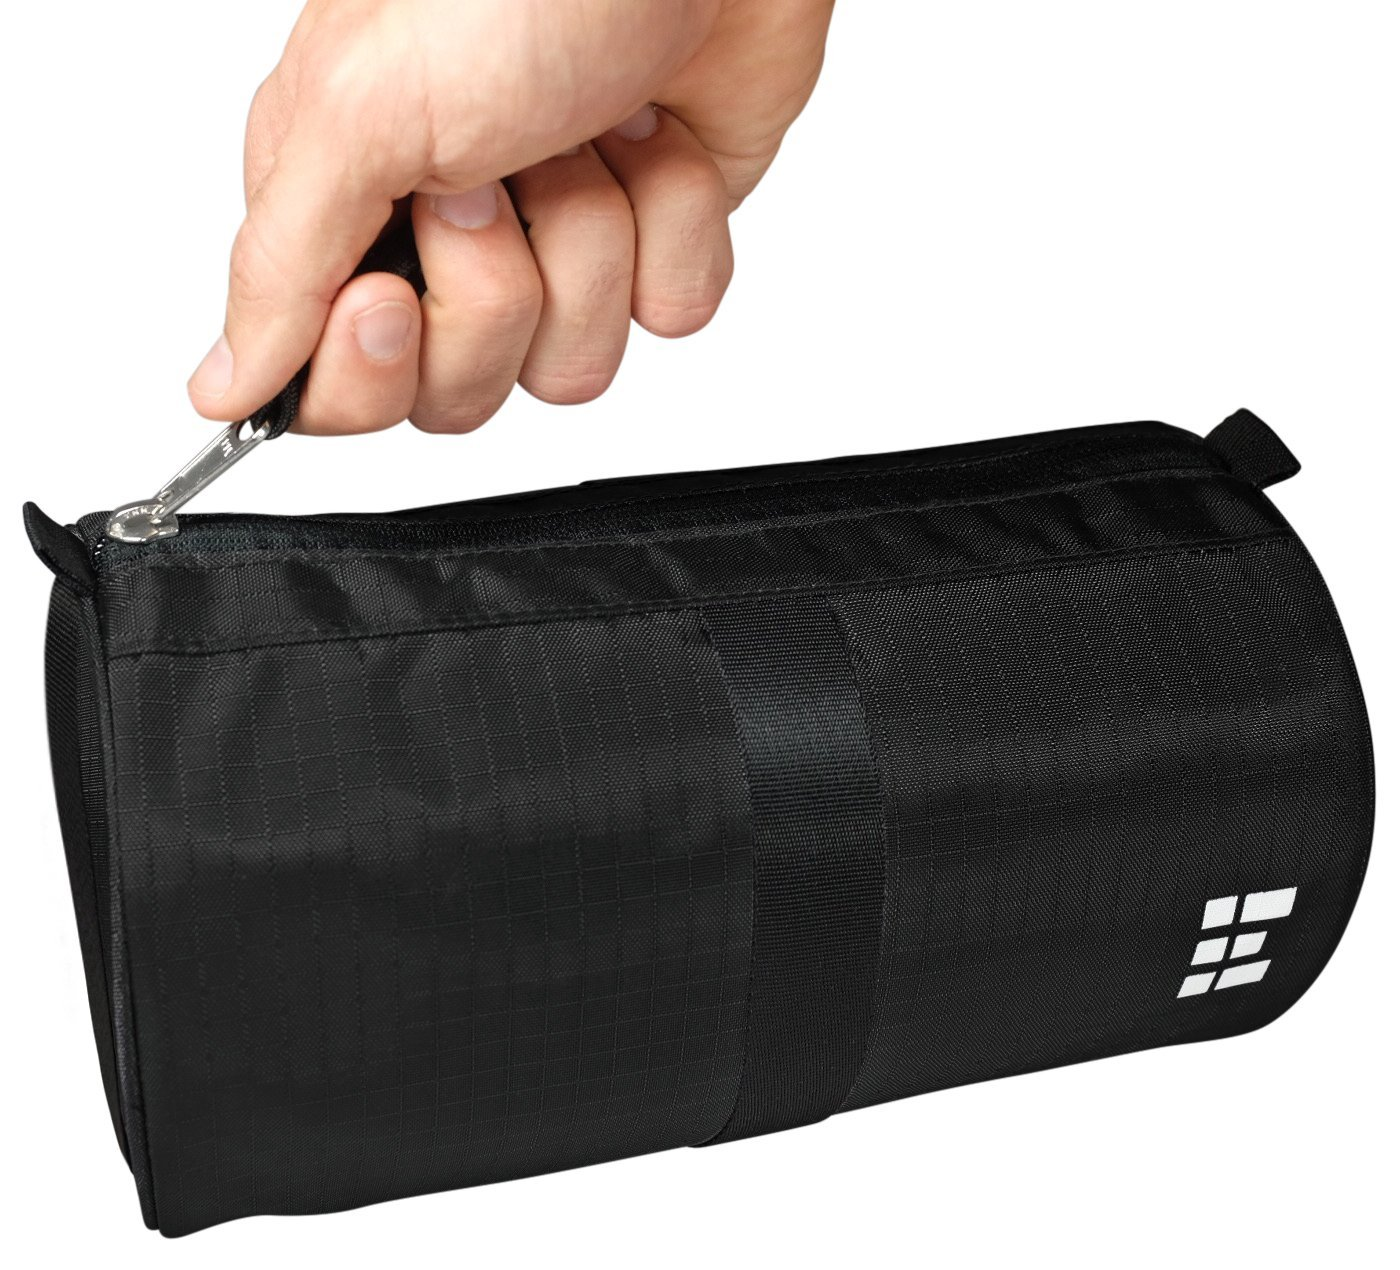 f9c7f44aee5 Amazon.com   Zero Grid Travel Dopp Bag - Toiletry Kit for Men, Black    Beauty